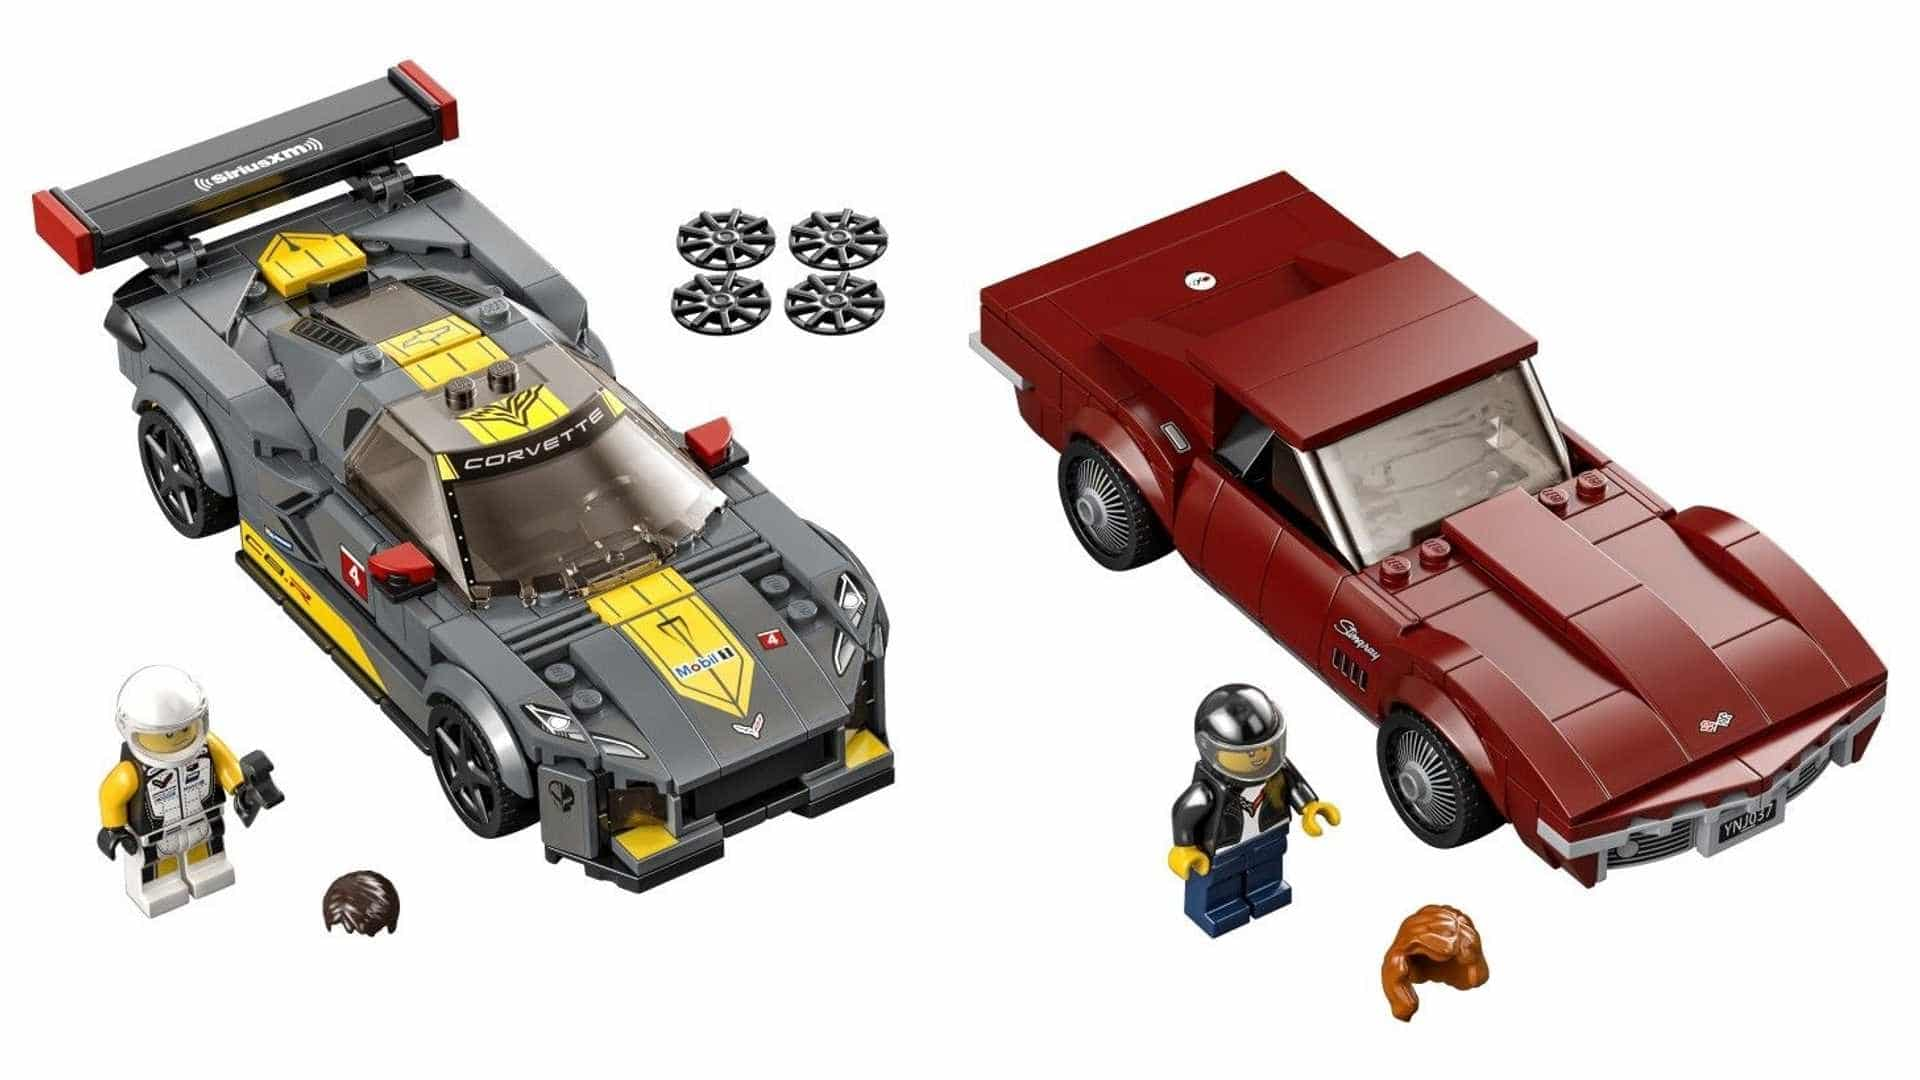 LEGO's new Speed Champions sets include Ford, Toyota, and Chevrolet 21